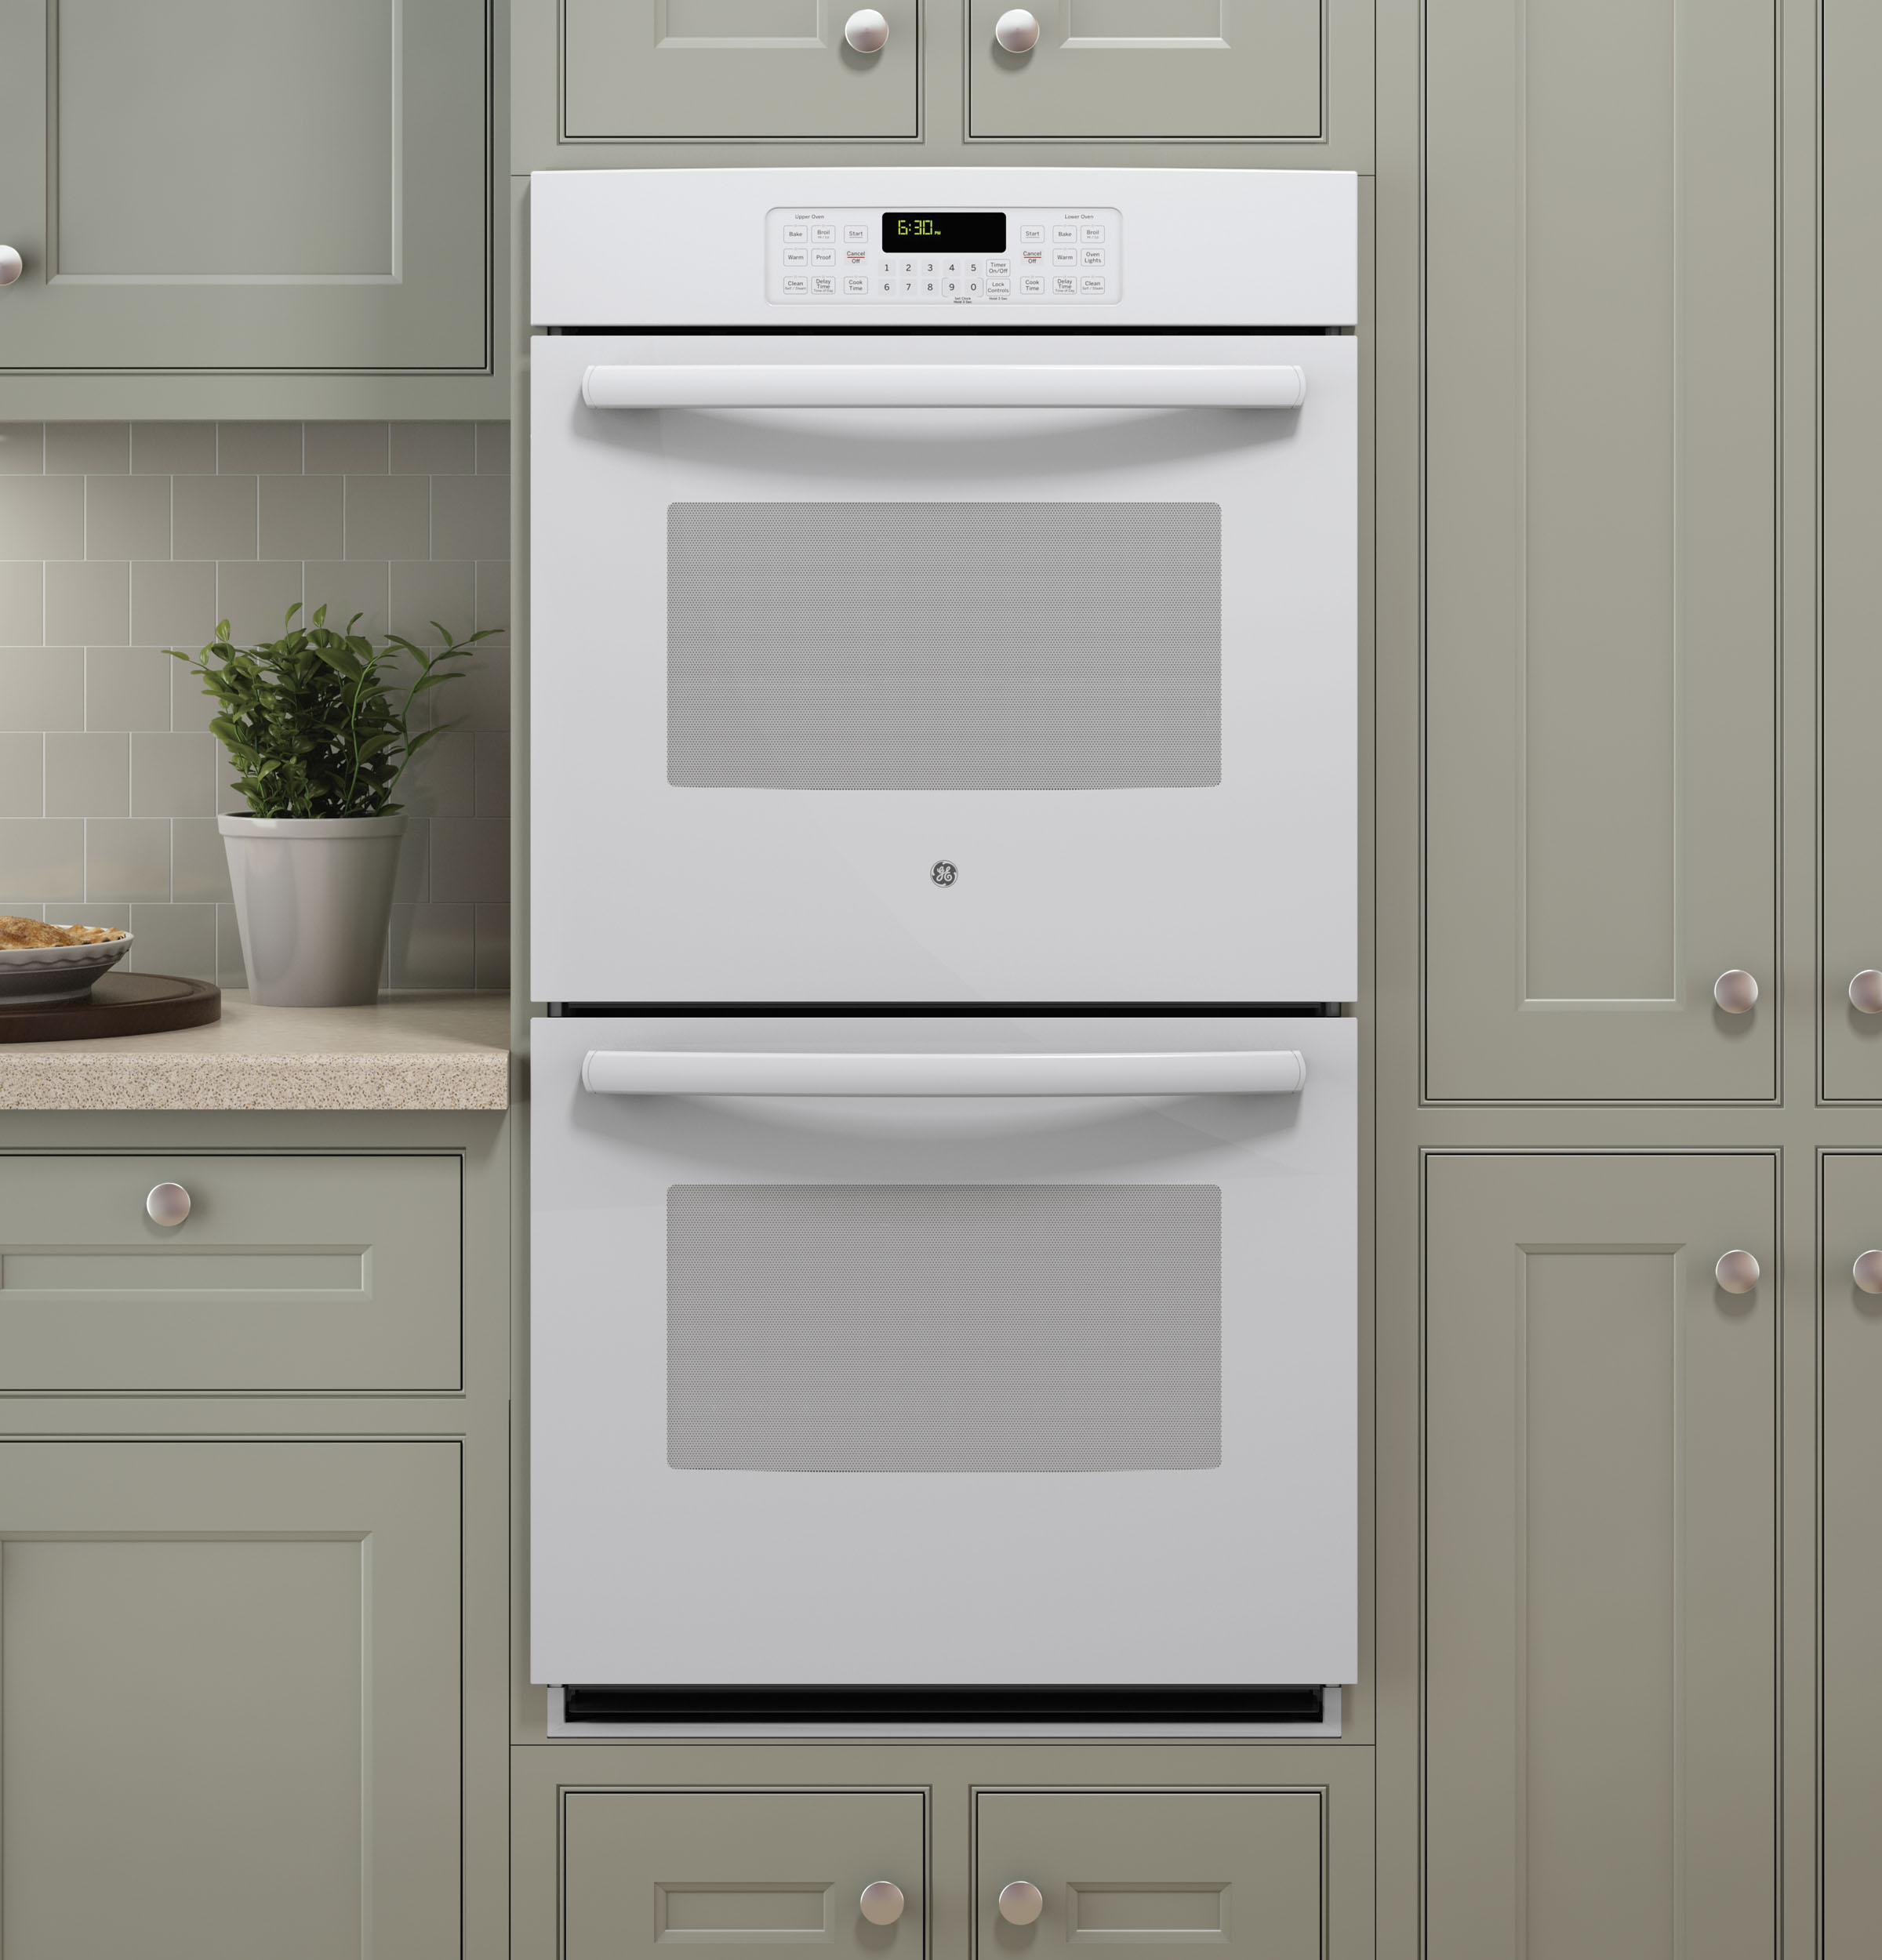 Whirlpool white ice double wall oven - Product Image Product Image